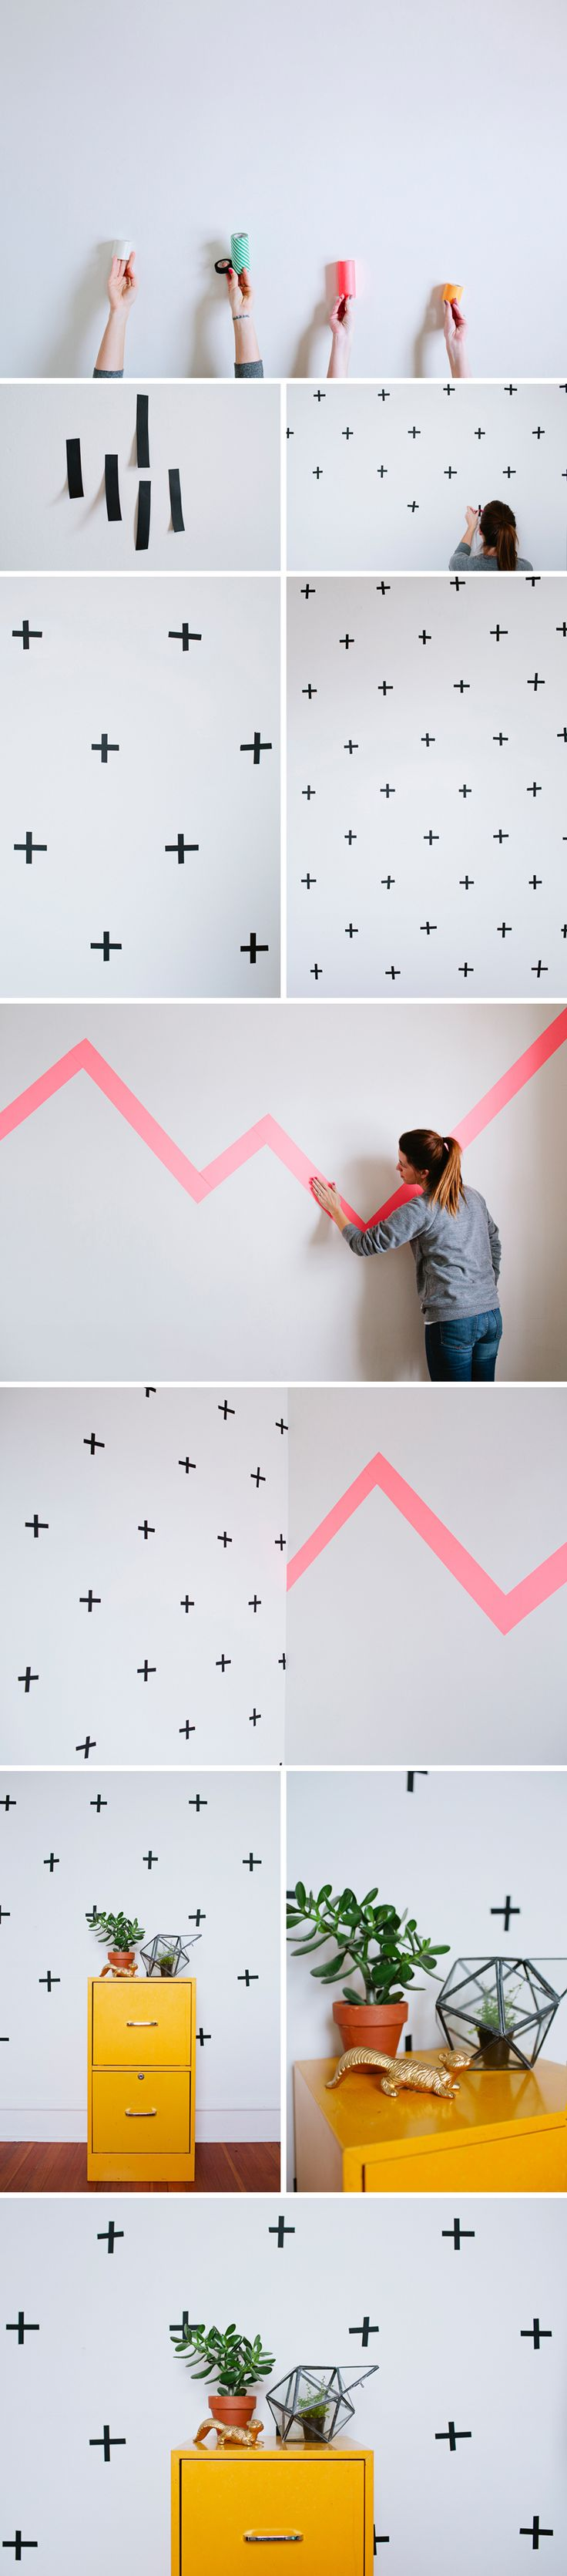 "Decora tus paredes con ""washi tape"""